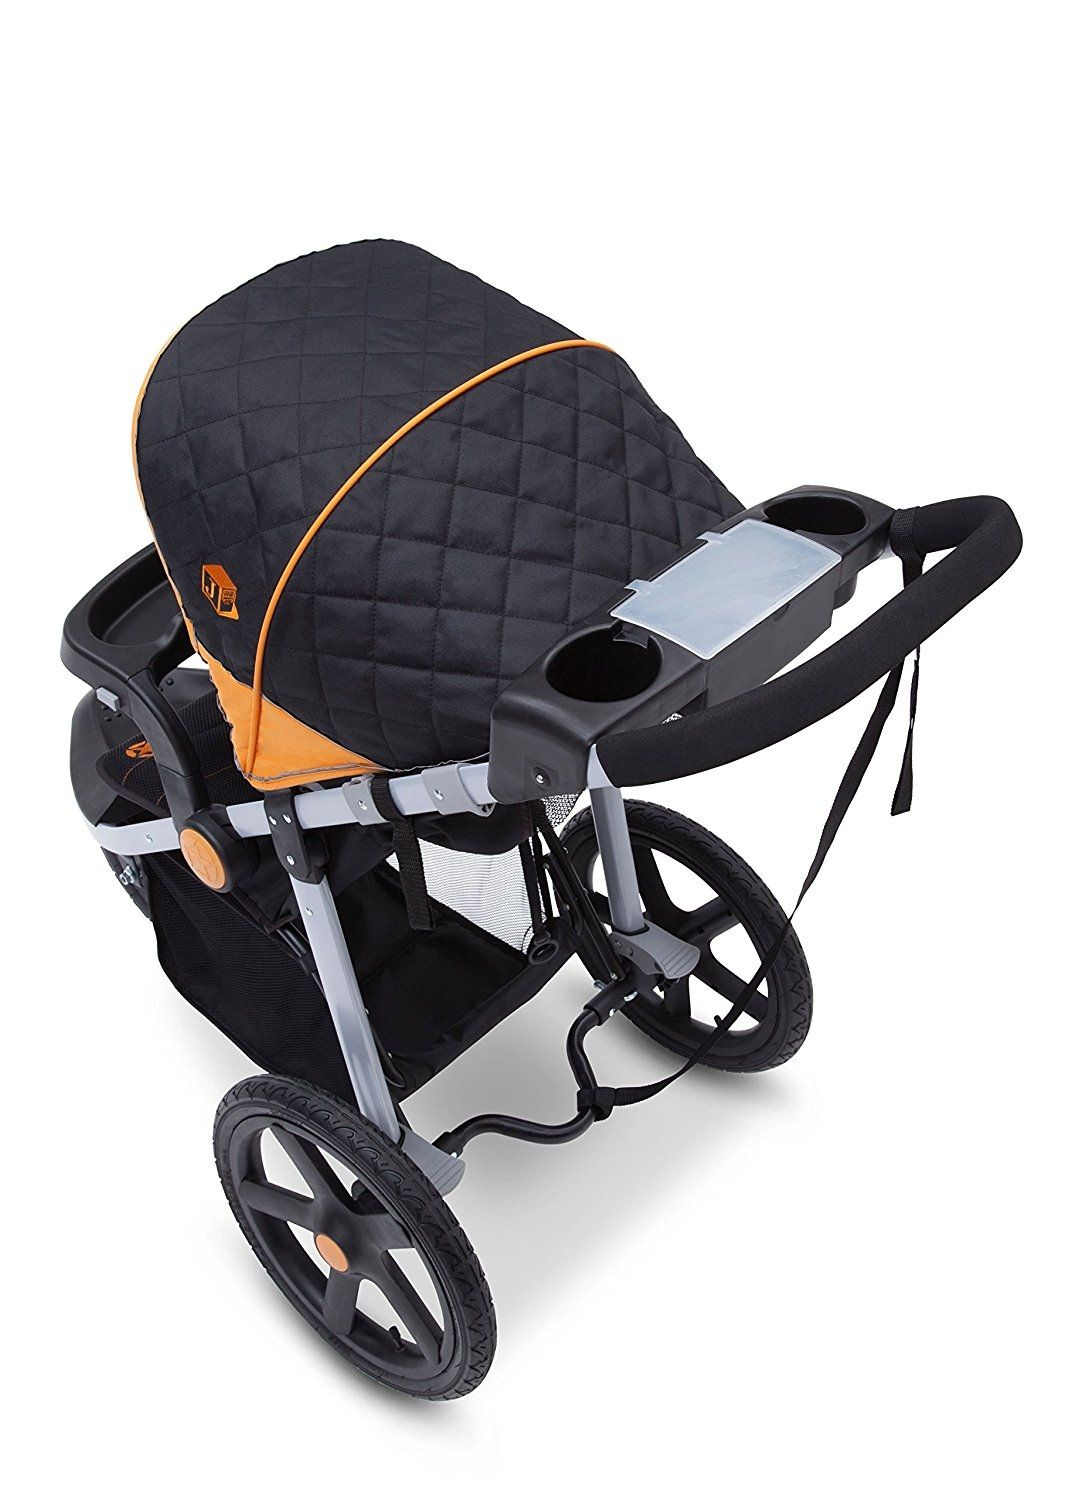 5 stroller features that will make your life easier Jeep